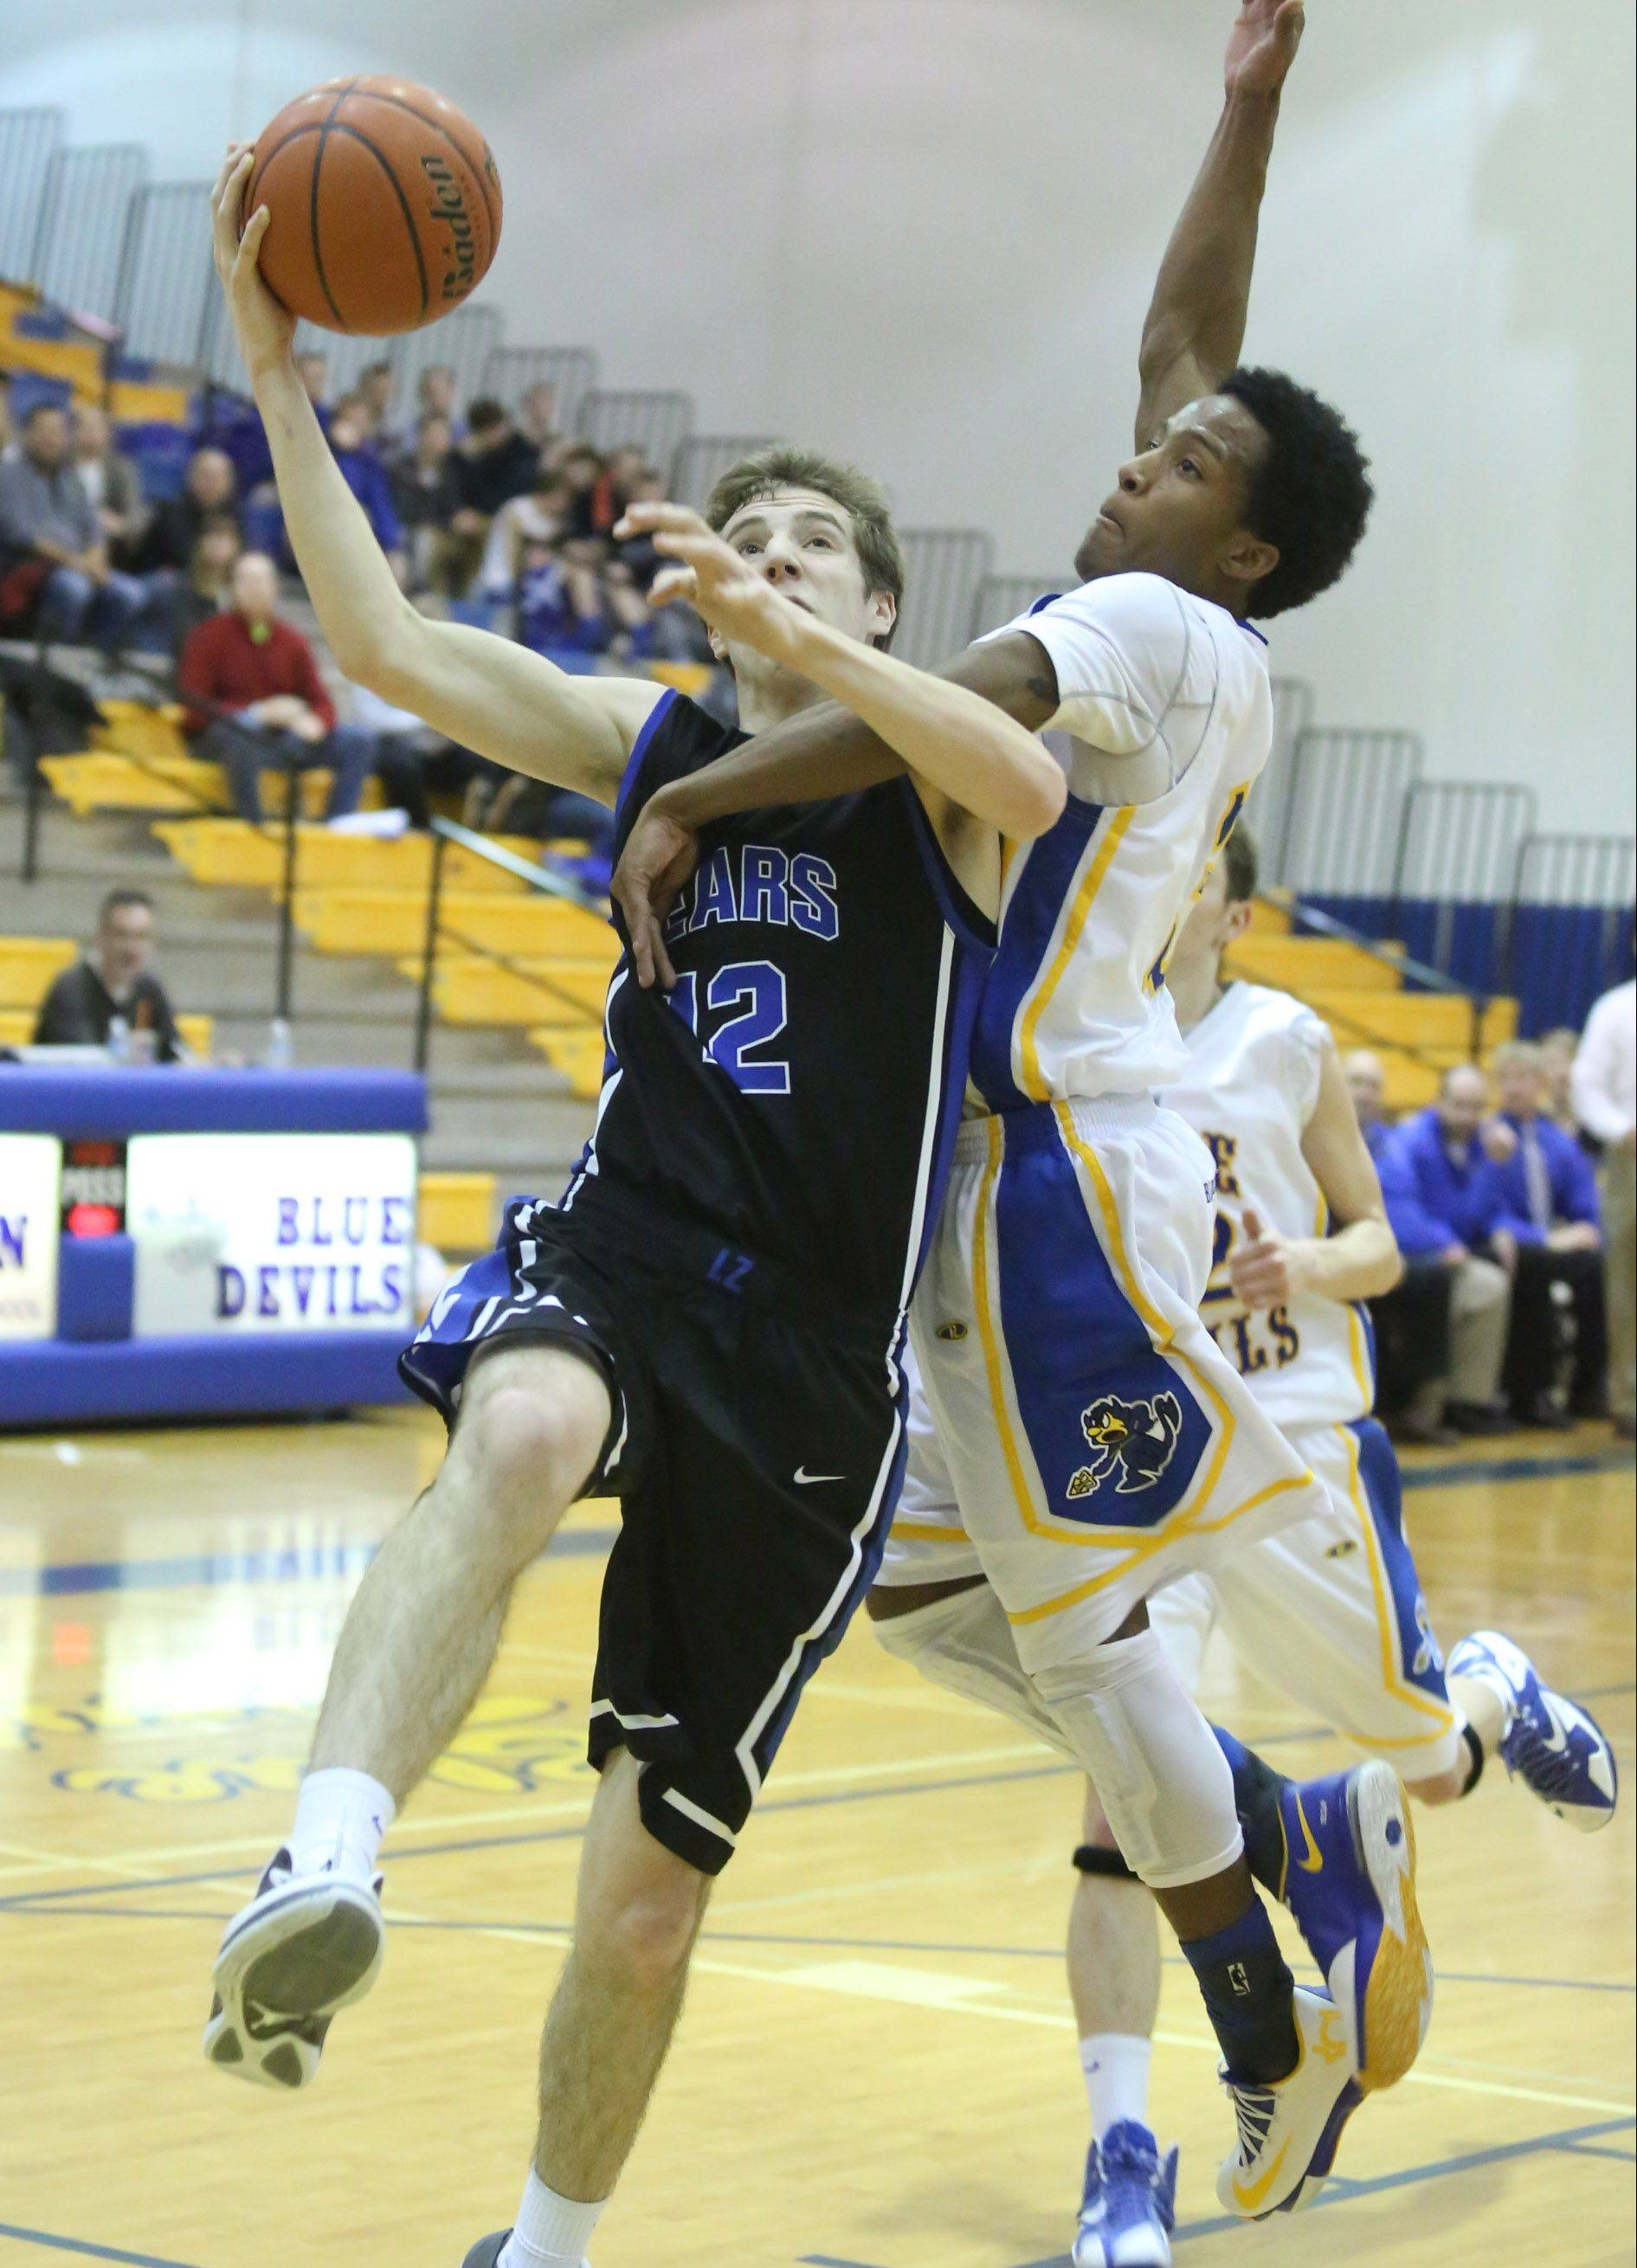 Warren defender Eric Gillespie is called for a foul against Lake Zurich forward Corey Helgeson on a breakaway to the basket on Friday at Warren in Gurnee.